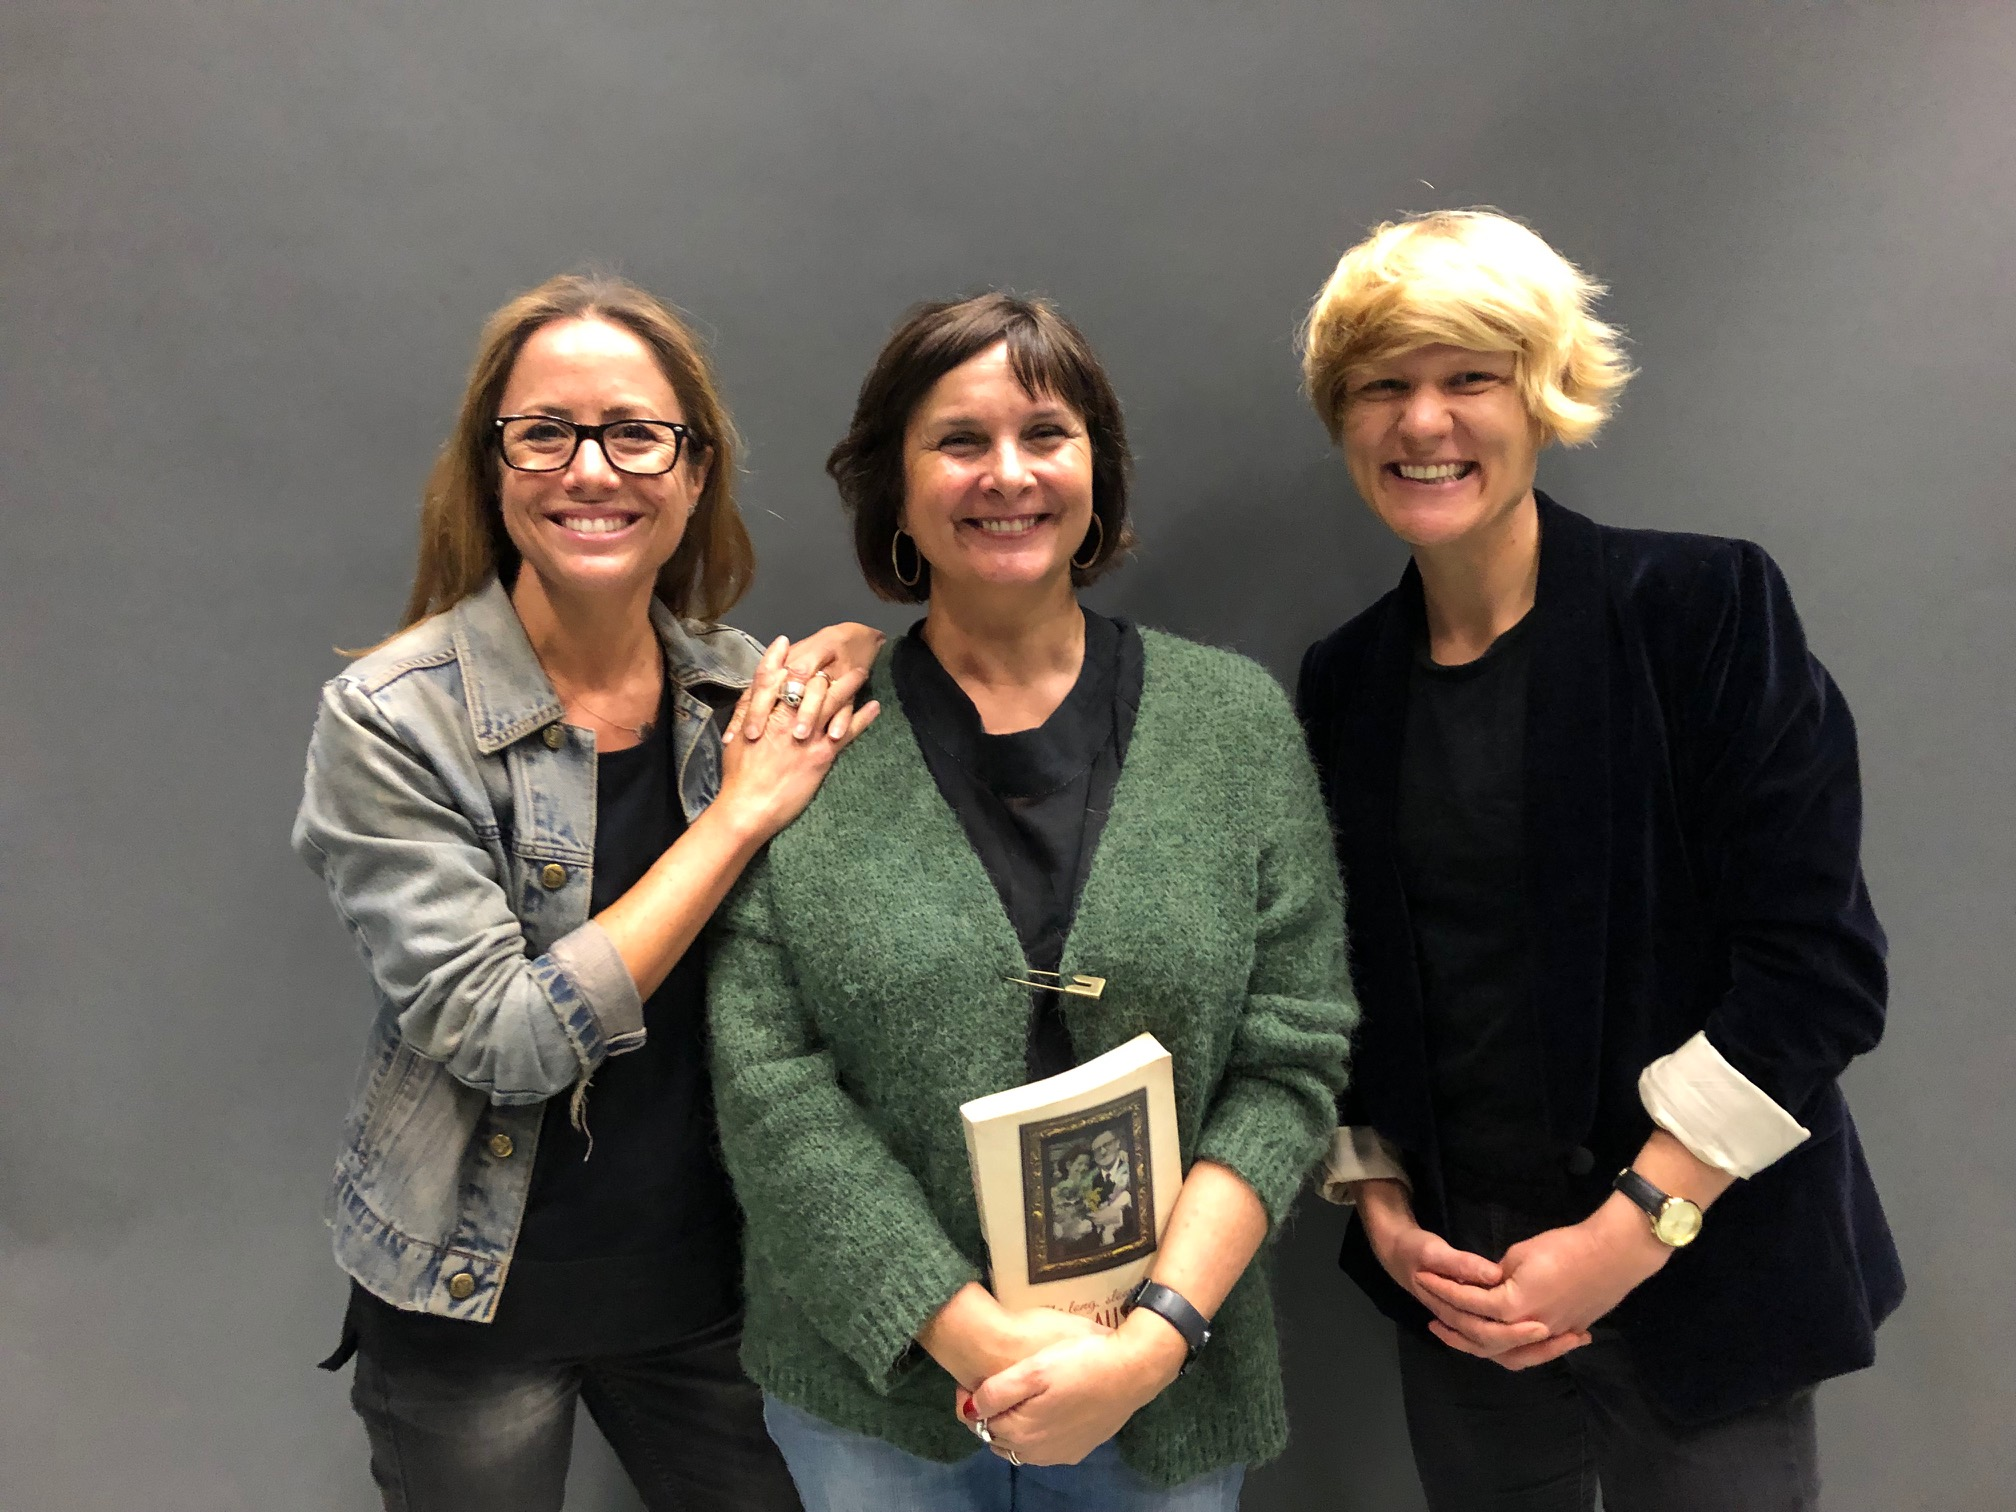 Clare Wright, Gwenda Tavan, and Yves Rees